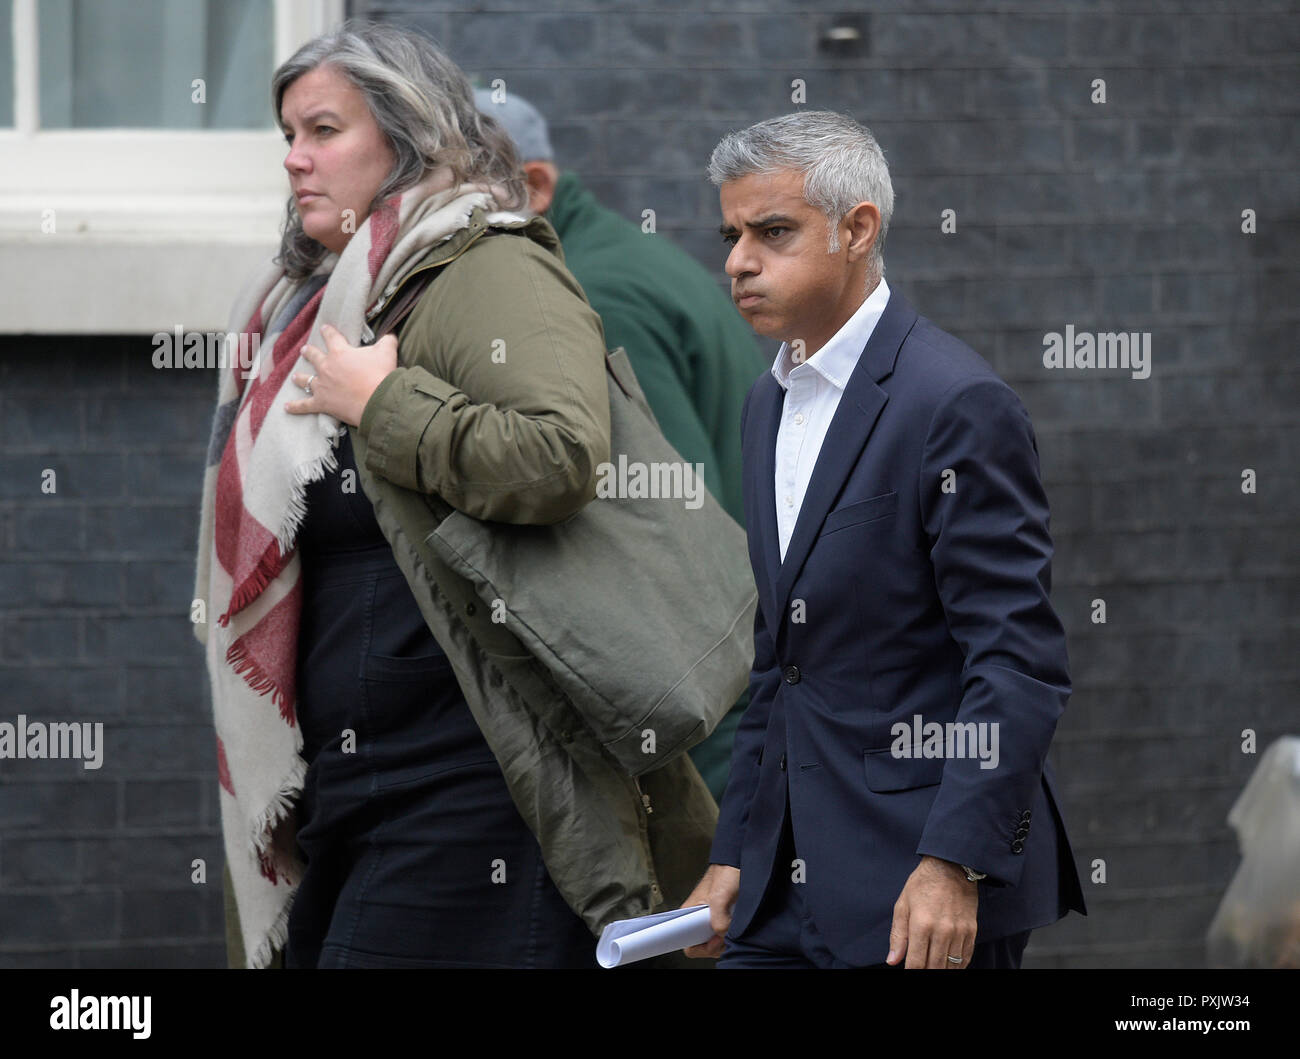 Downing Street, London, UK. 23 October 2018. London Mayor Sadiq Khan arrives for a meeting at 11 Downing Street during the long weekly cabinet meeting at No 10. Credit: Malcolm Park/Alamy Live News. - Stock Image